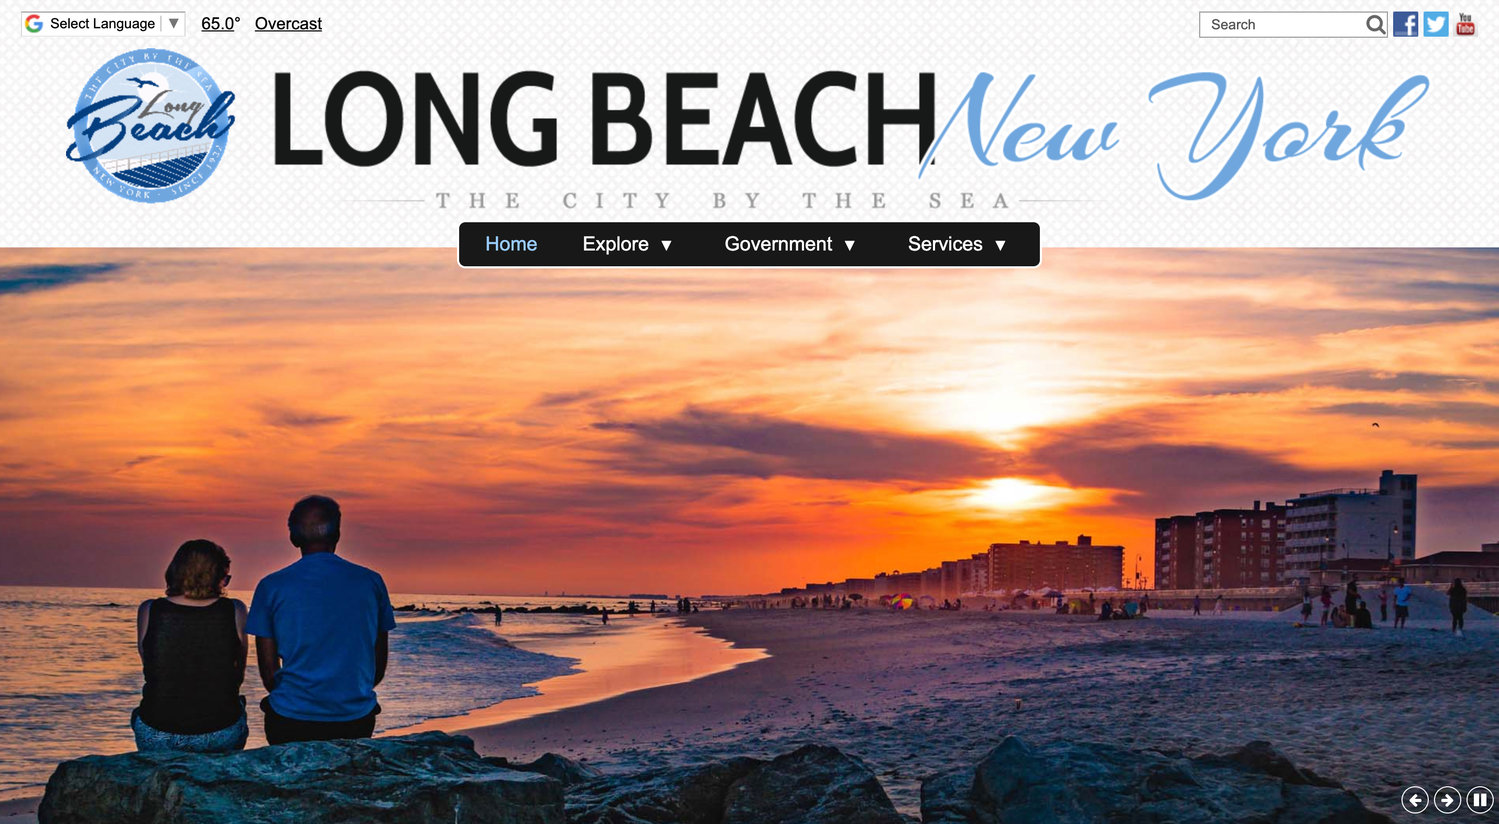 The city launched its new website on May 20.